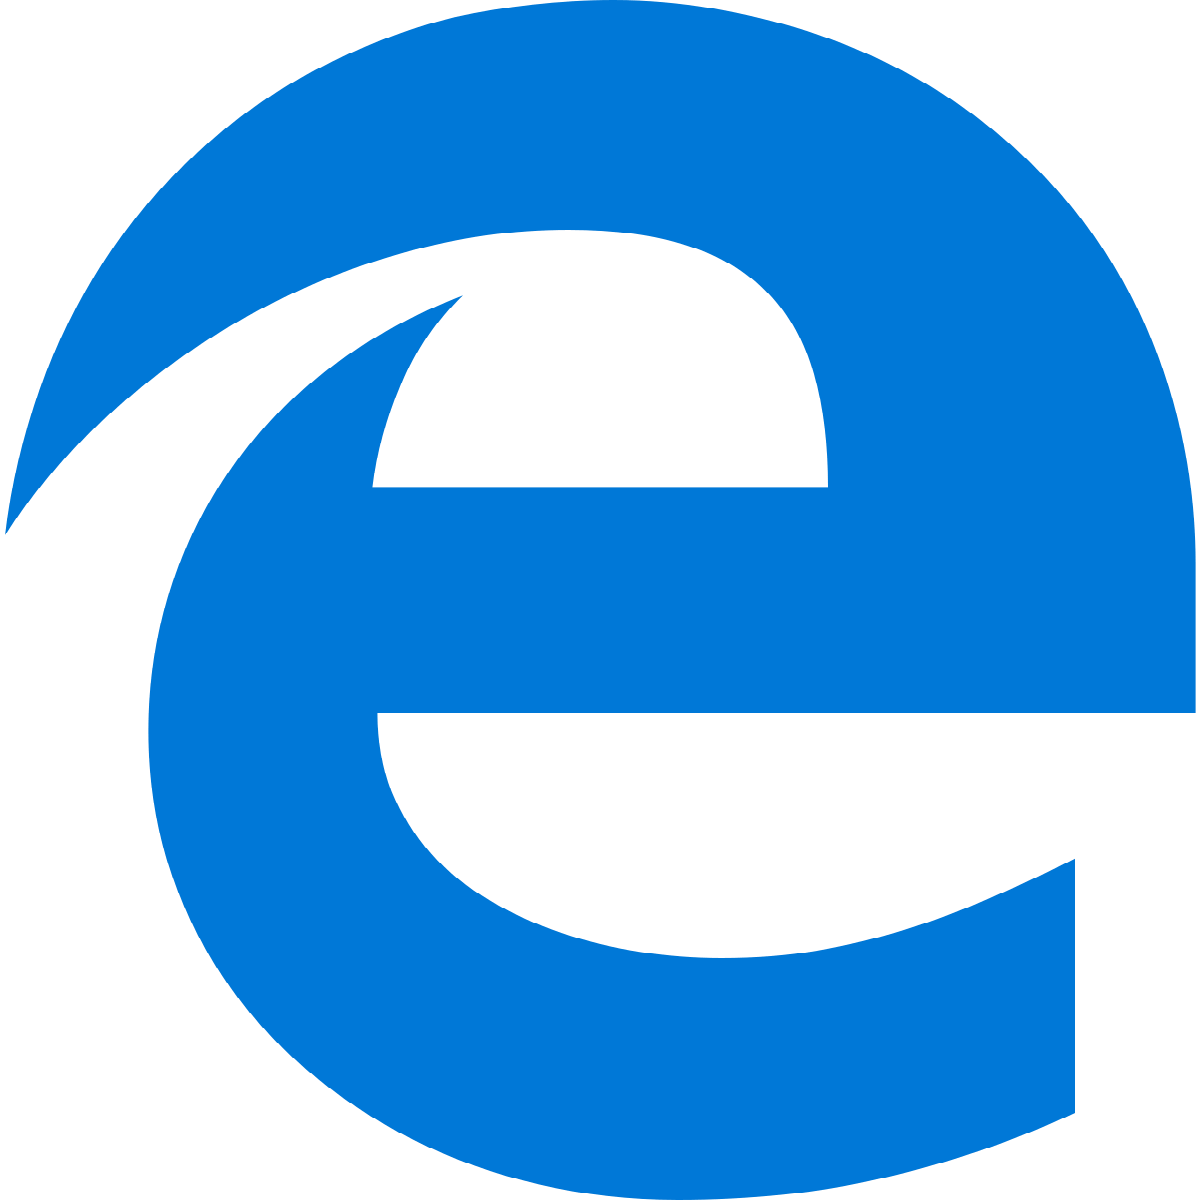 Microsoft removes IE mode from Edge, says it\'s an enterprise.